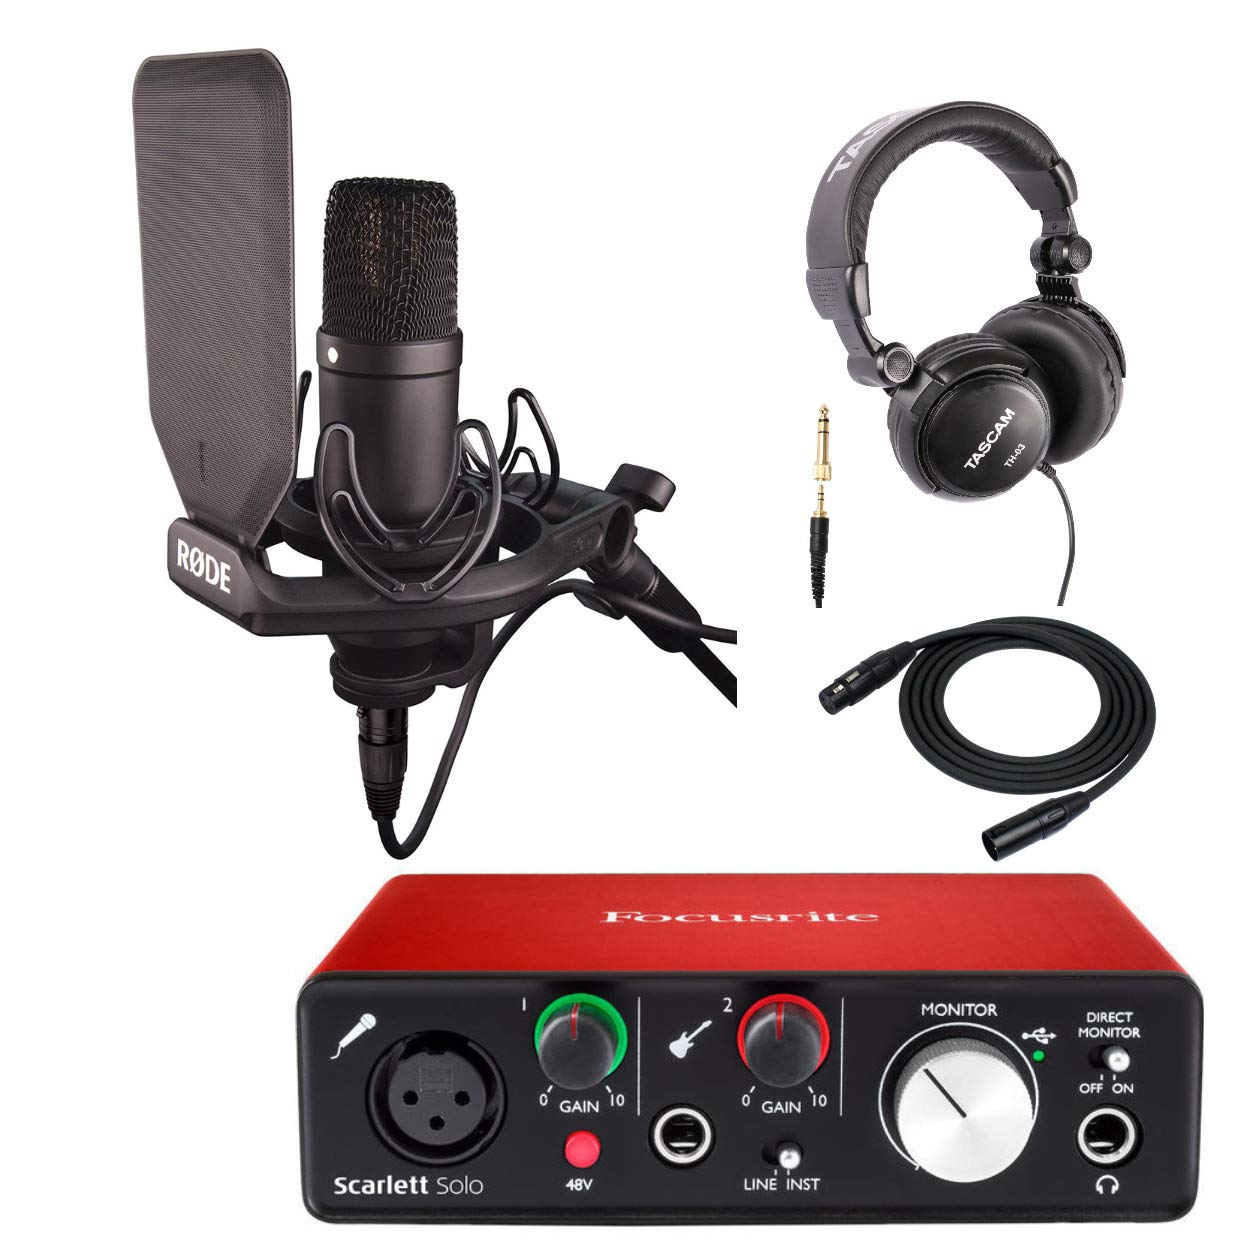 Rode NT1 Kit Condenser Microphone Cardioid with Scarlett Solo Interface, Headphones and XLR Cable